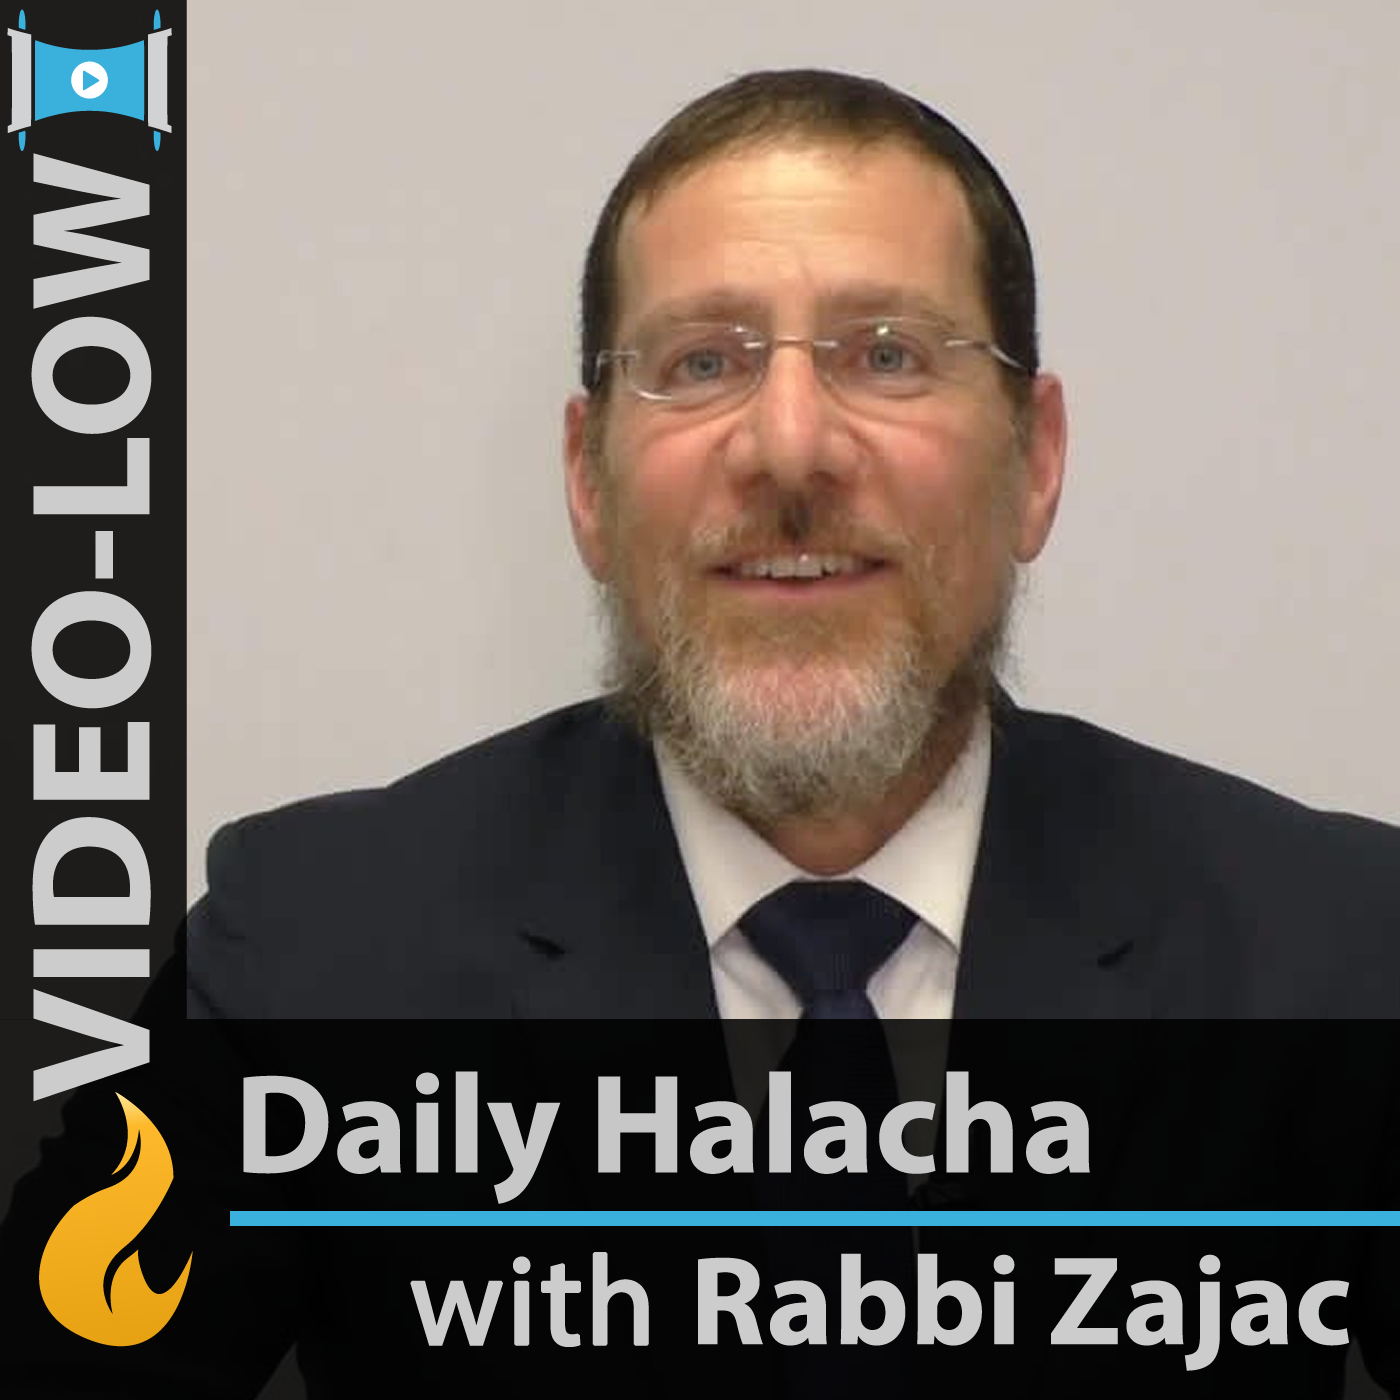 Daily Halachah (Video-LOW)